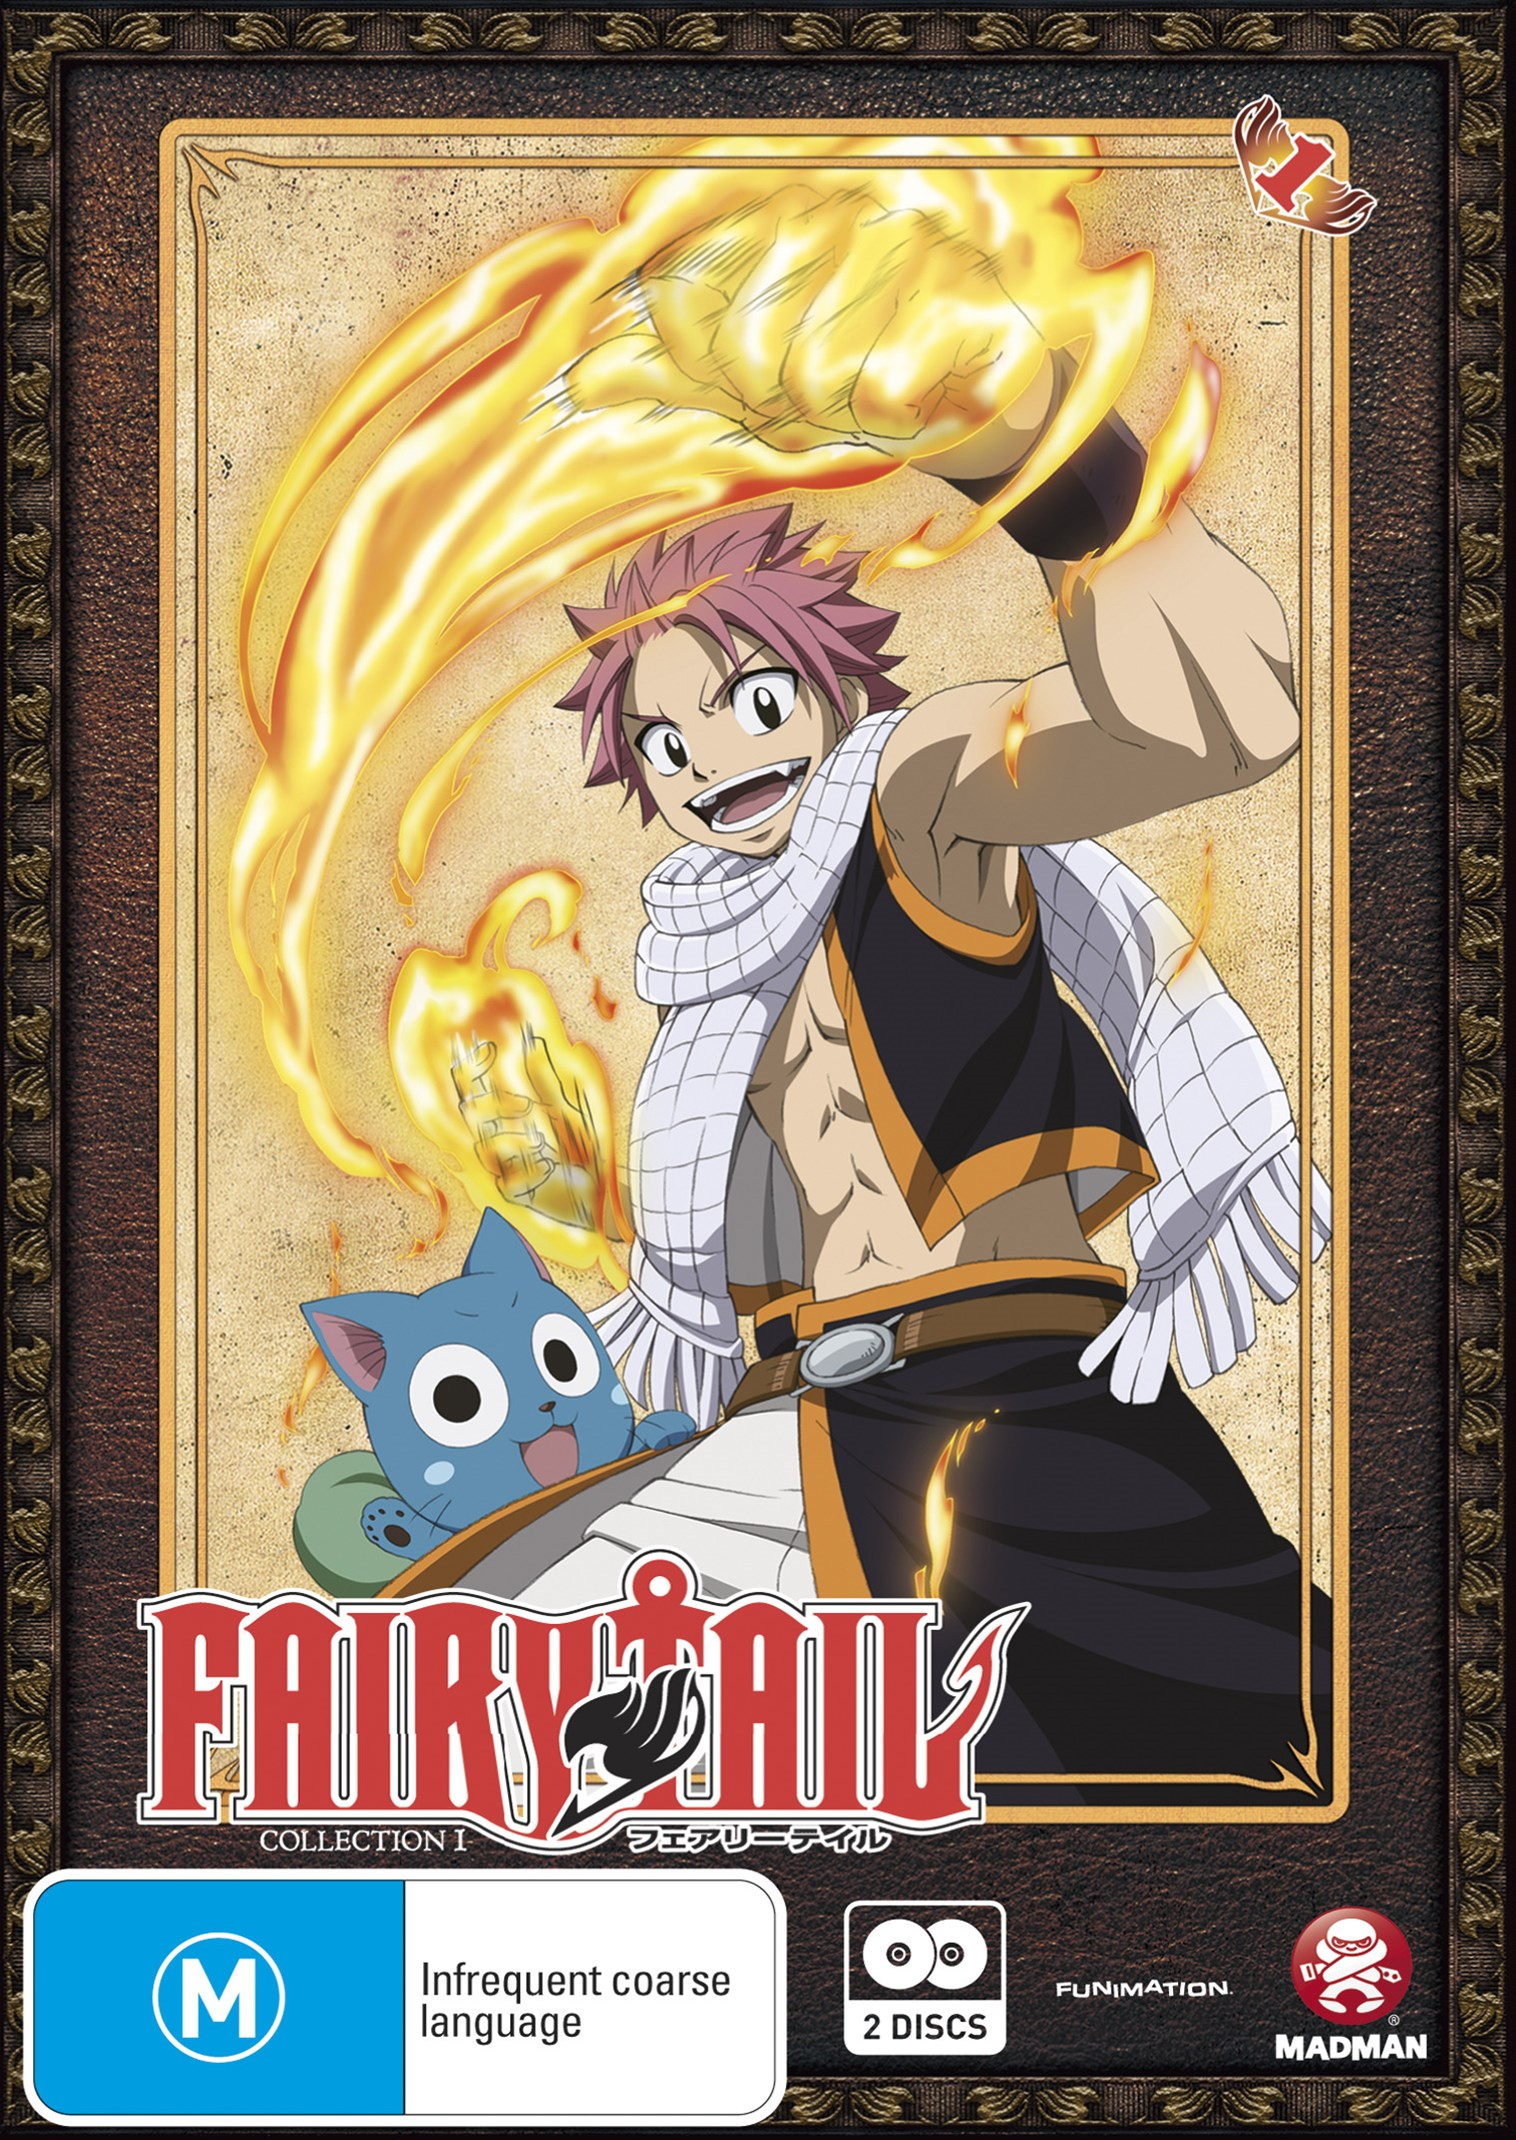 Fairy Tail: Collection 1